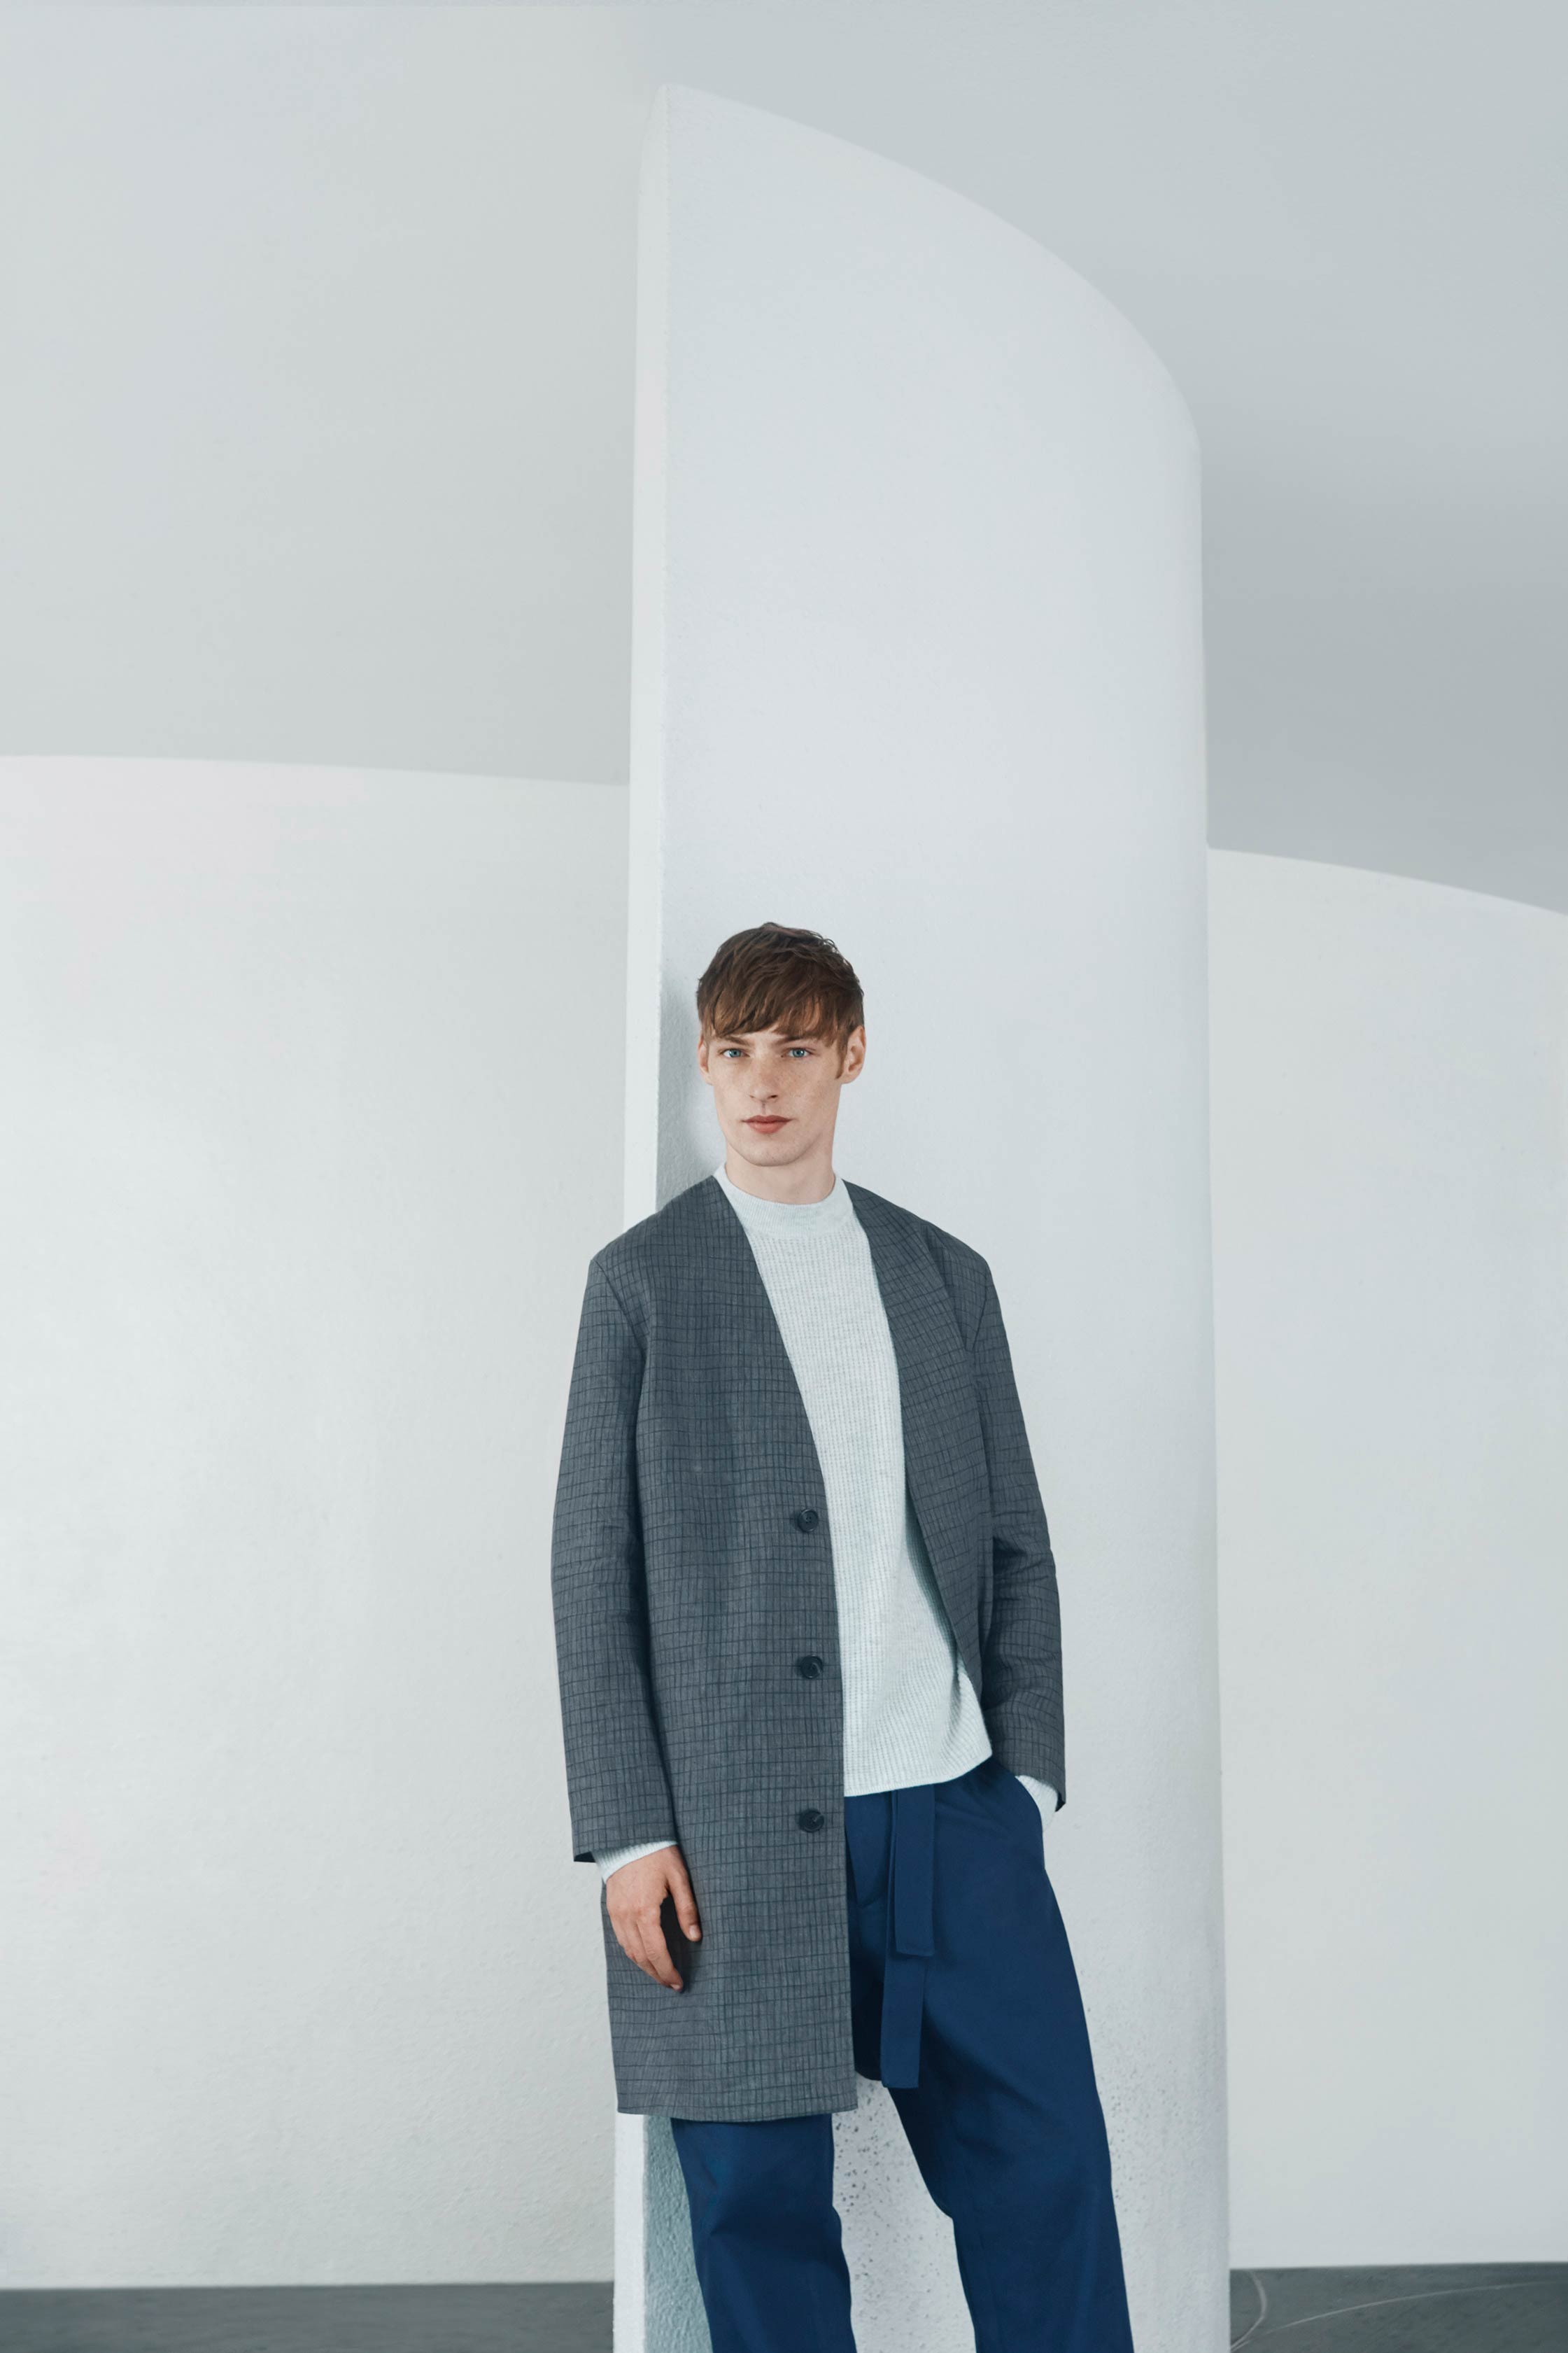 cos-x-agnes-martin-mens-collection-3